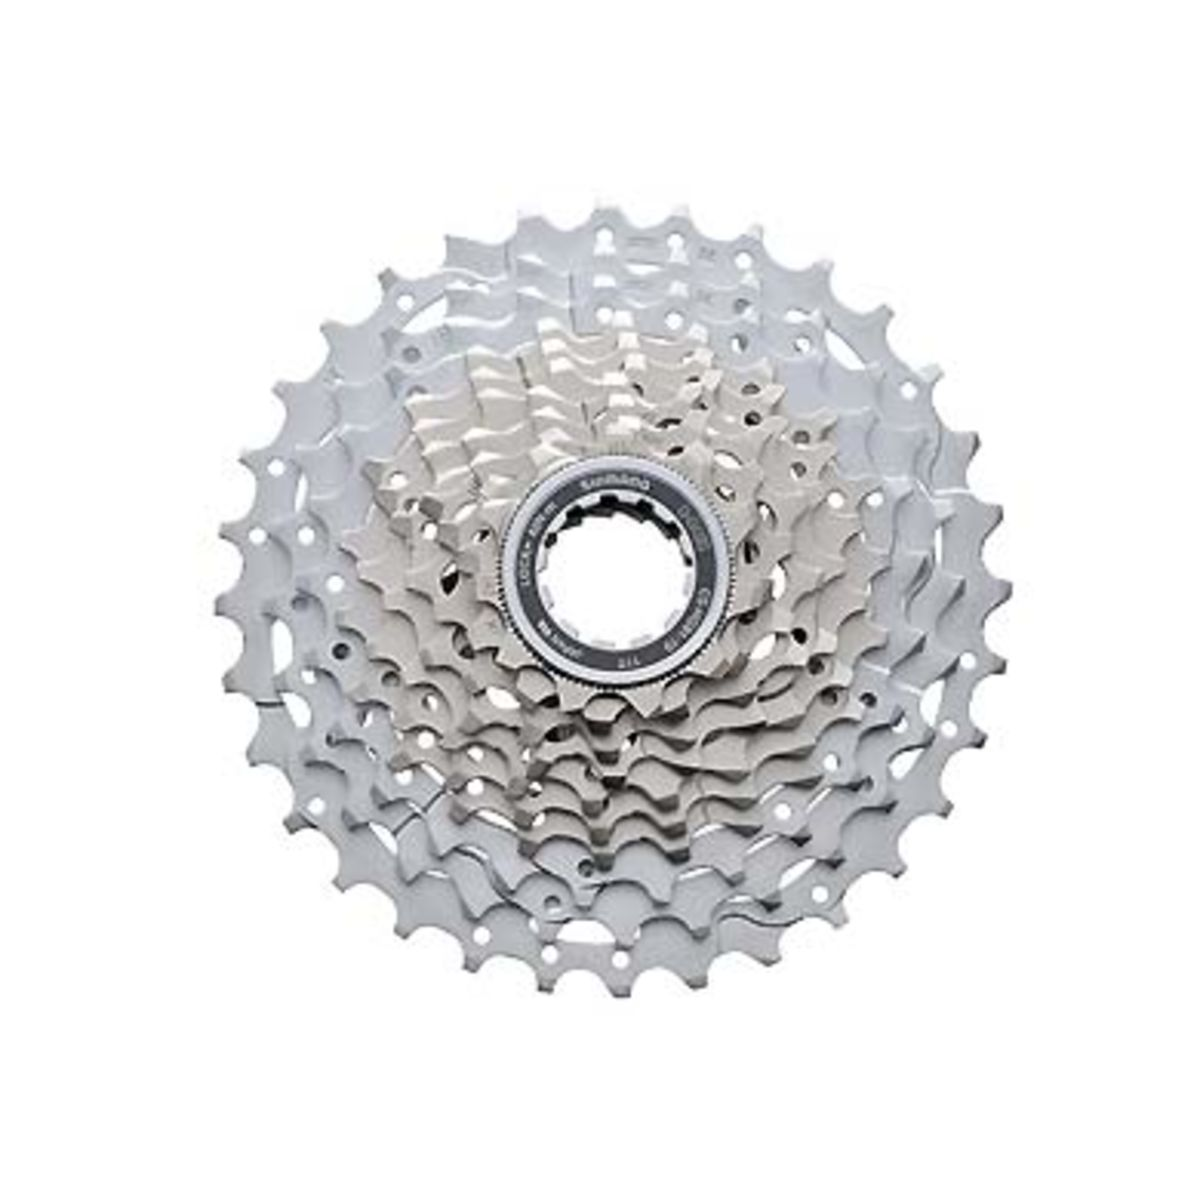 SLX/LX CS-HG81-10 10-speed cassette